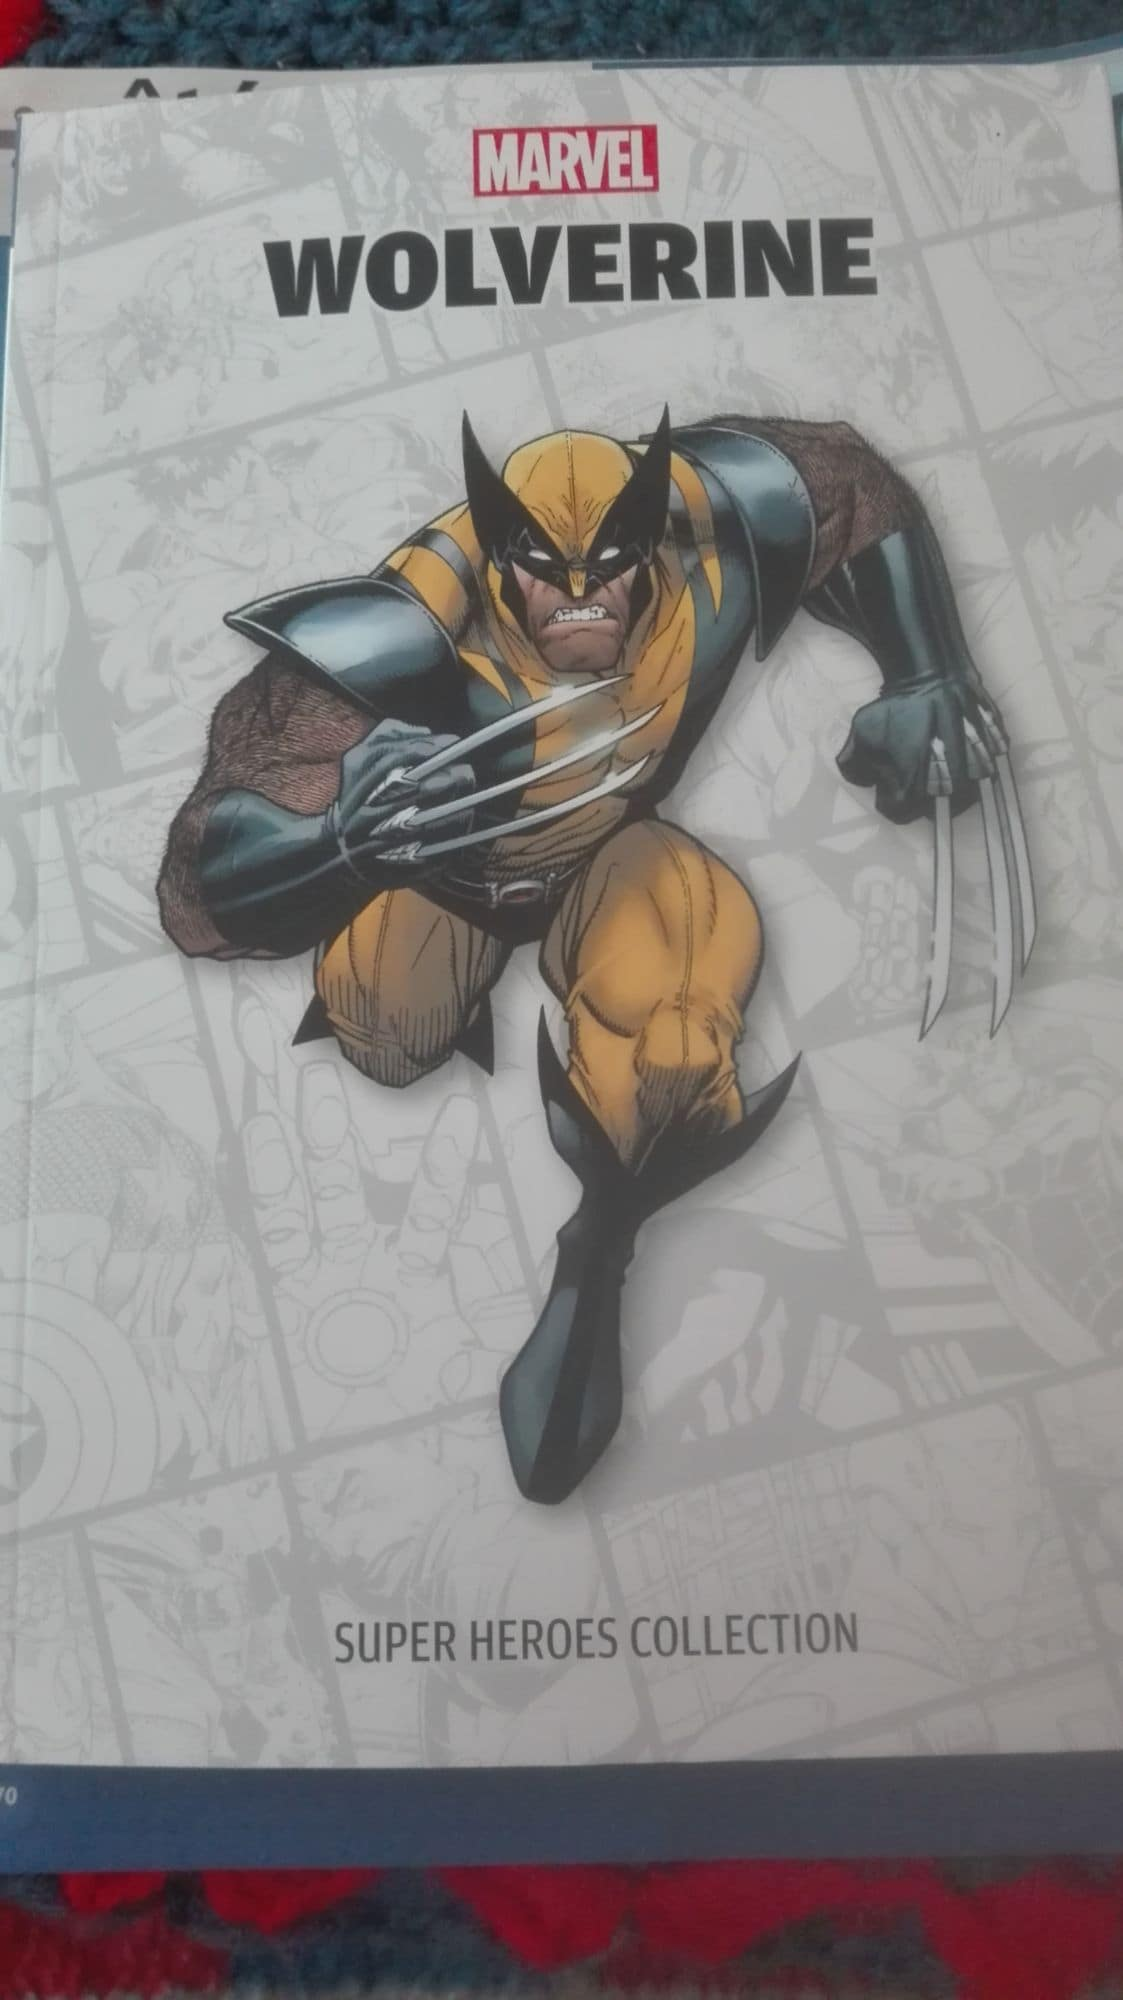 Marvel Super Heroes Collection - Wolverine